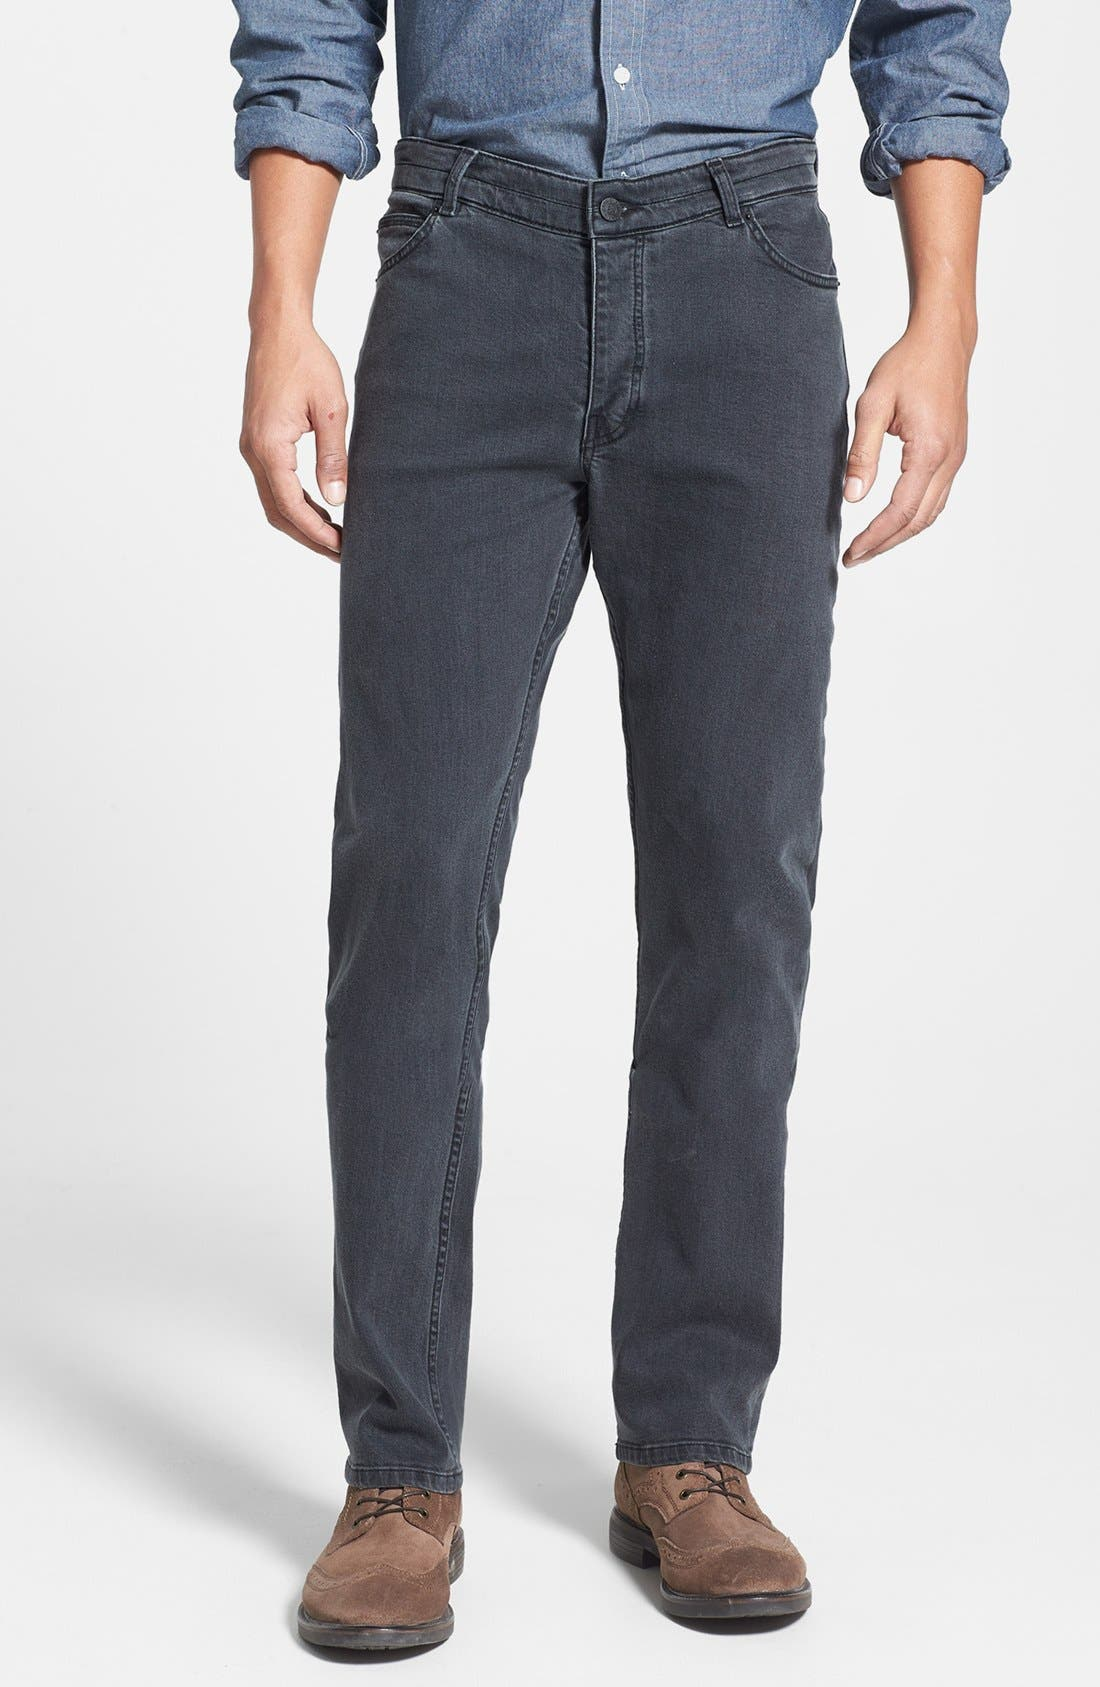 Alternate Image 1 Selected - Surface to Air Five Pocket Slim Fit Pants